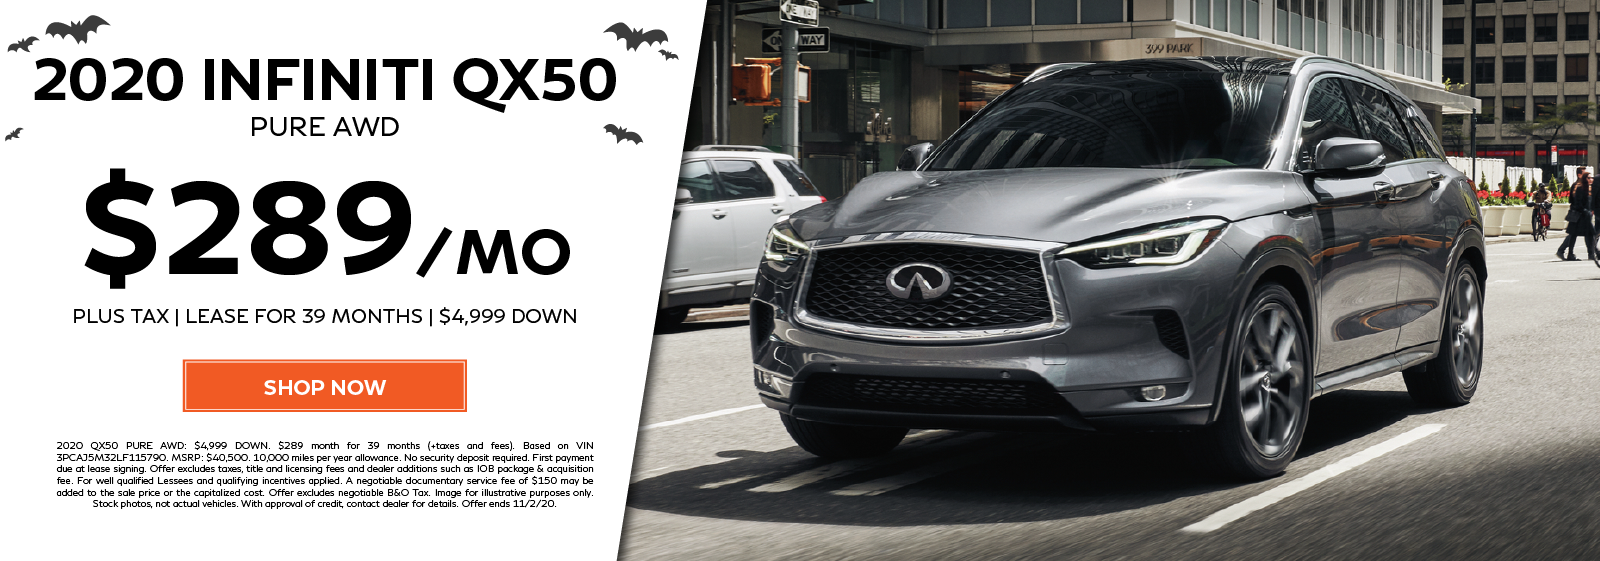 Lease a new 2020 QX50 PURE AWD for $289 per month for 39 months. Click to shop now.